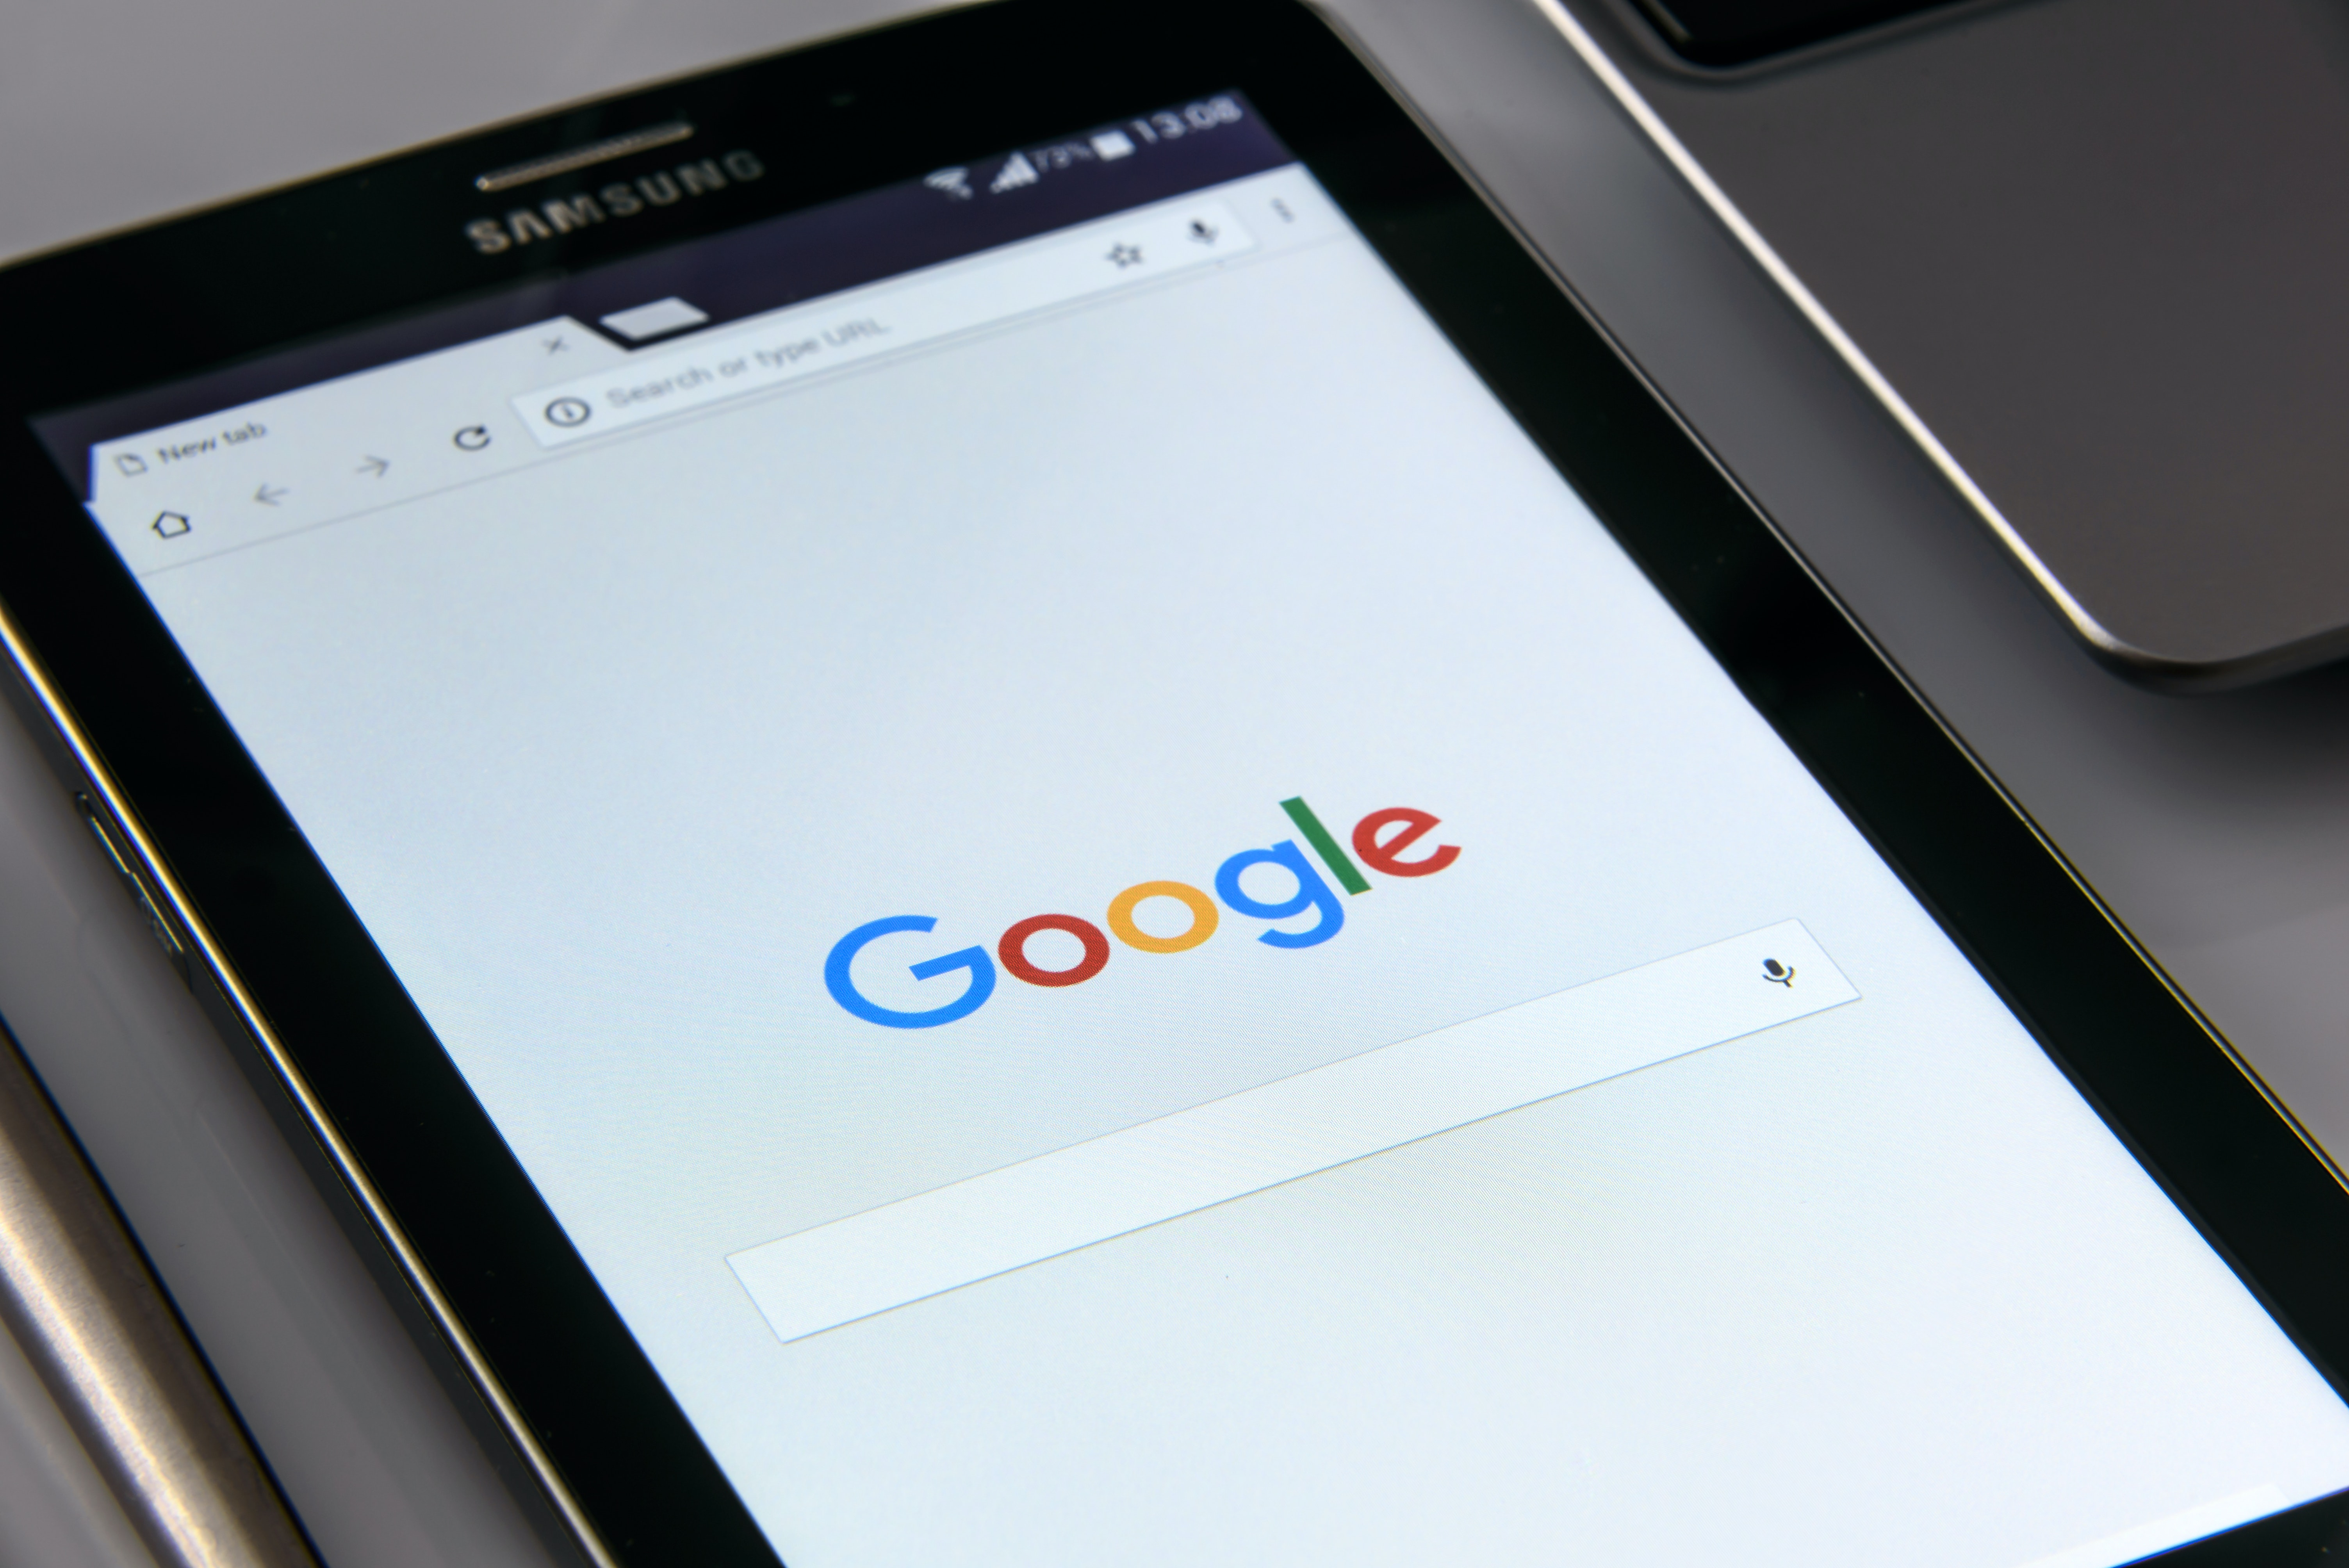 Price comparisons get an upgrade in Google Shopping